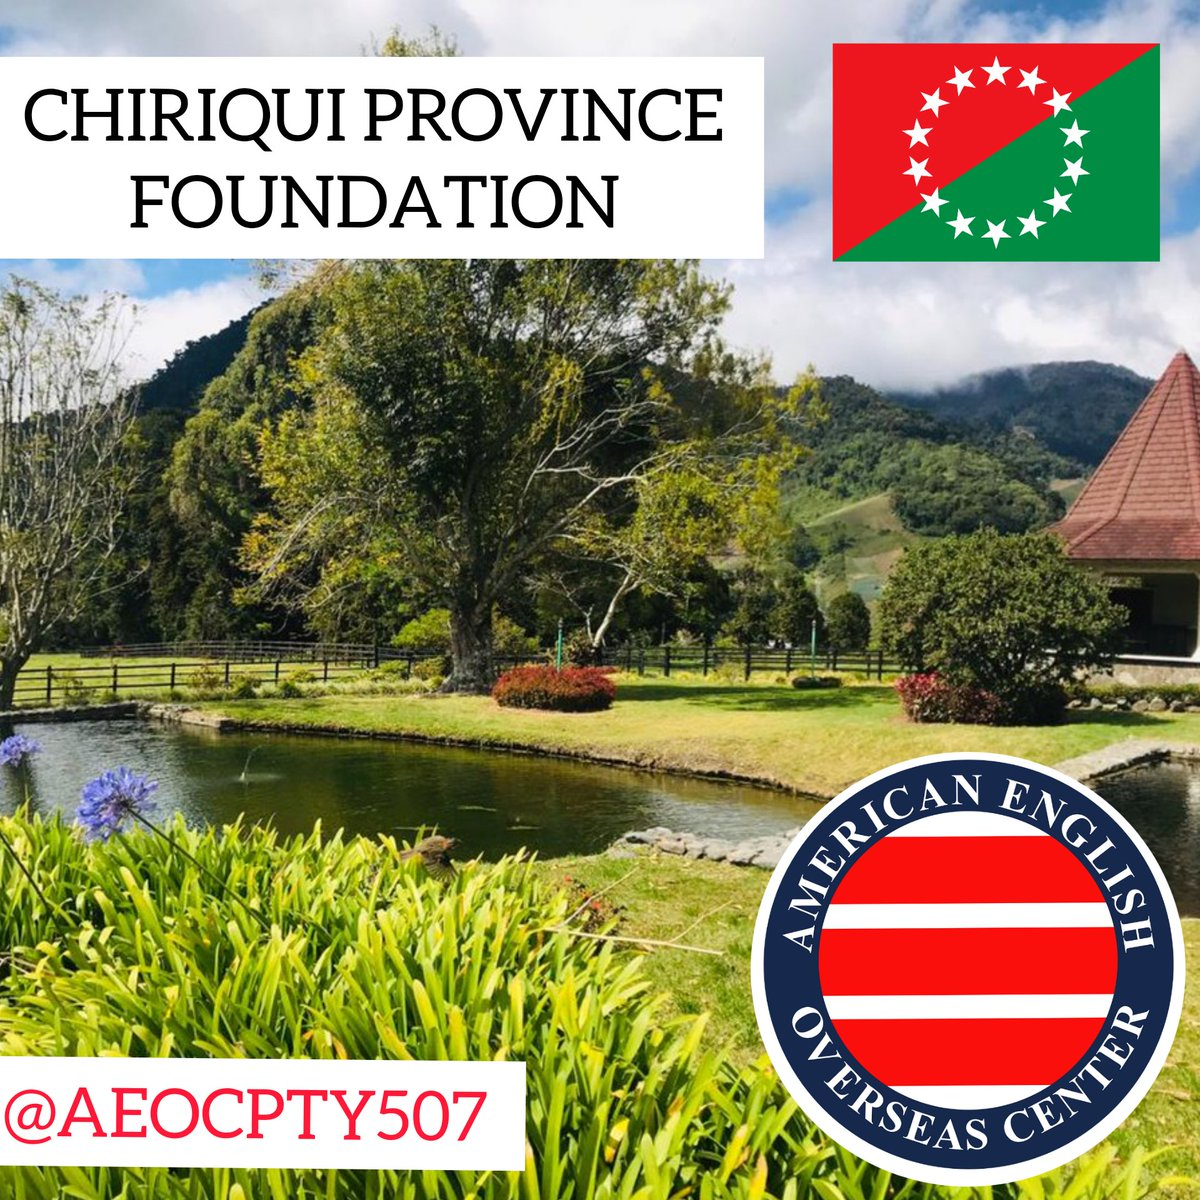 Let's celebrate together the 171 years of foundation anniversary with our people from Chiriqui. #Chiriqui #Panama #QuedateEnCasapic.twitter.com/bSaHA9iShQ